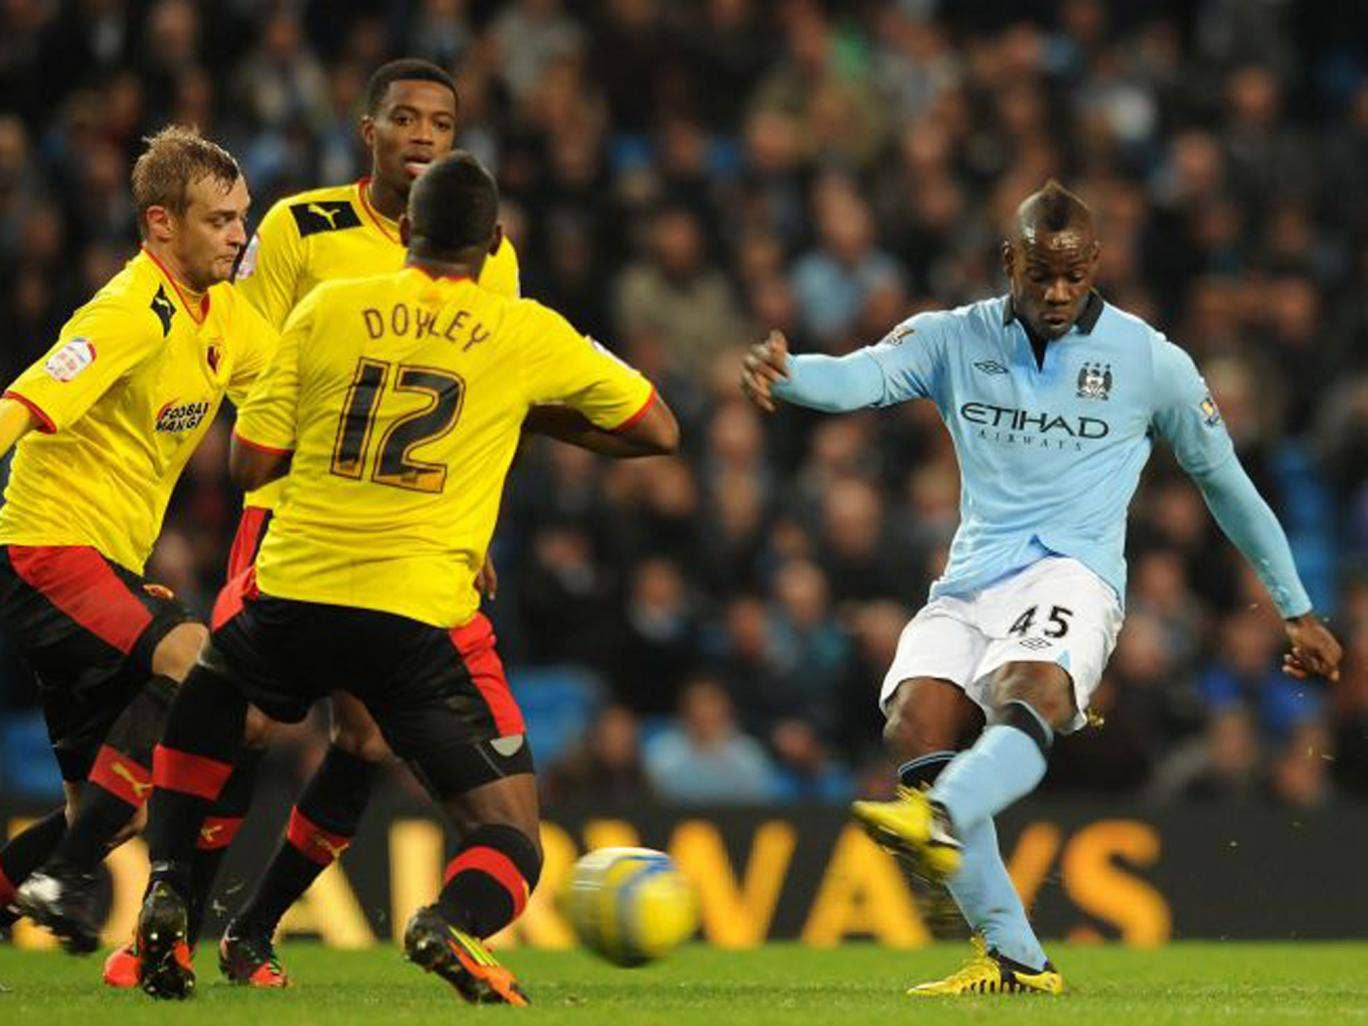 Mario Balotelli fires in a shot after coming on as a substitute on Saturday